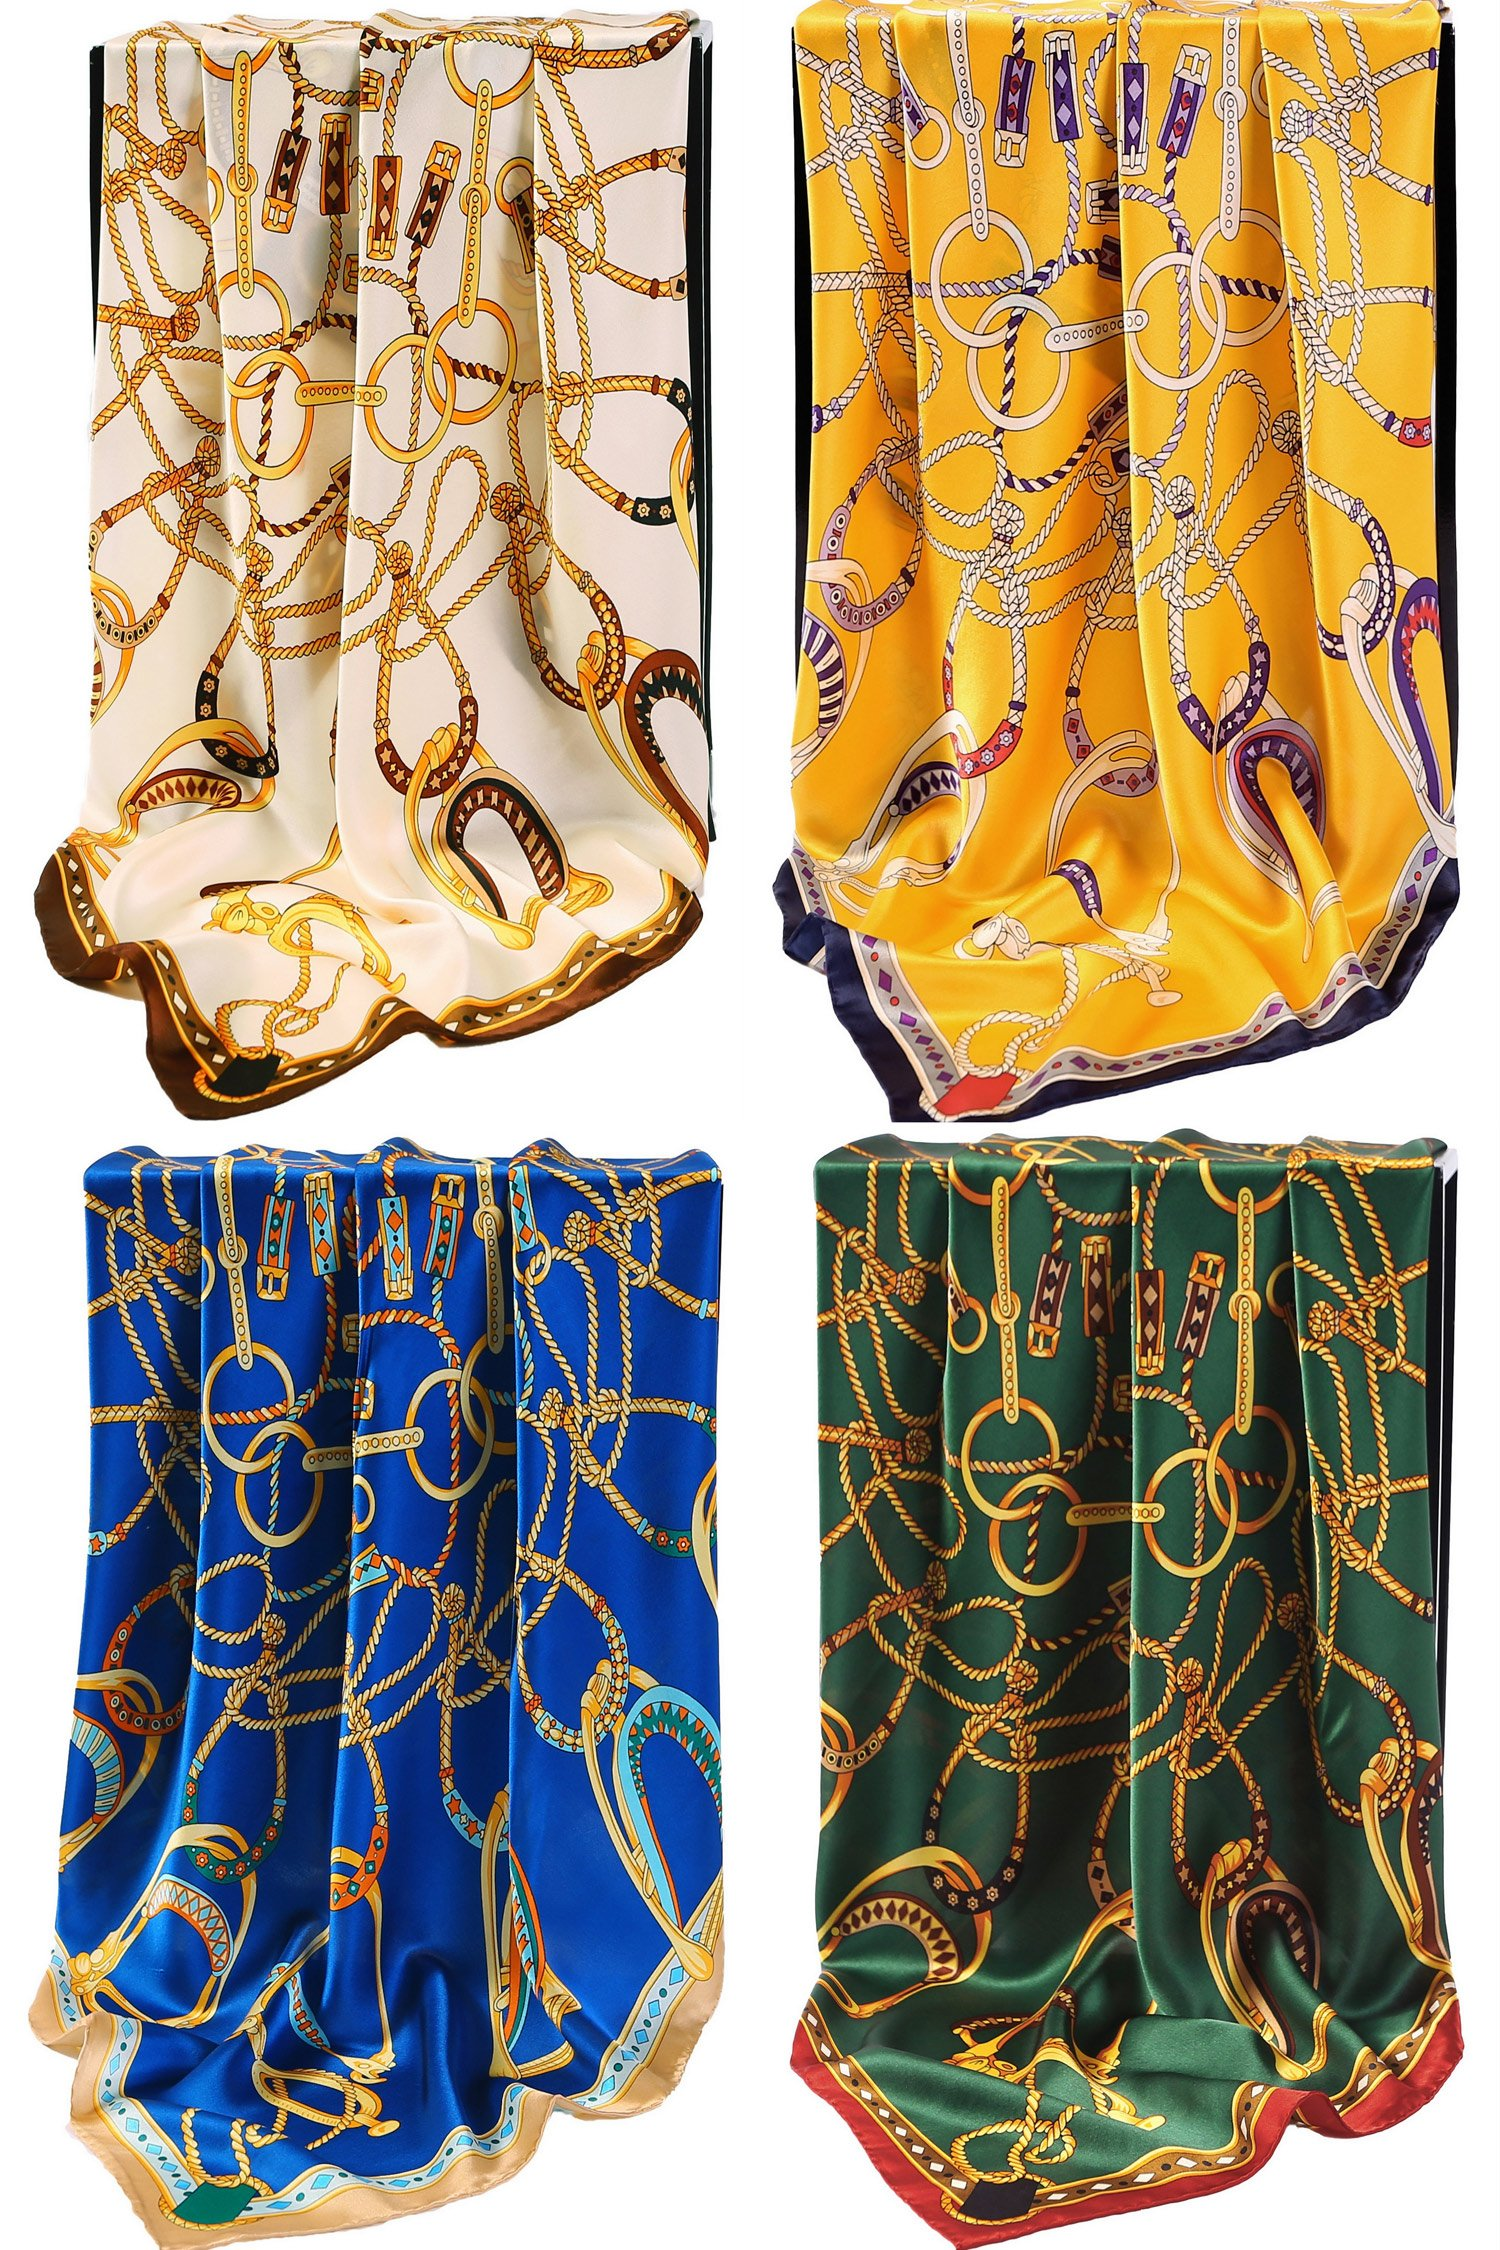 Grace Scarves 100% Silk Scarf With Hand Rolled Edges, Large, Set of 4, Equestrian Yoke by Grace Scarves